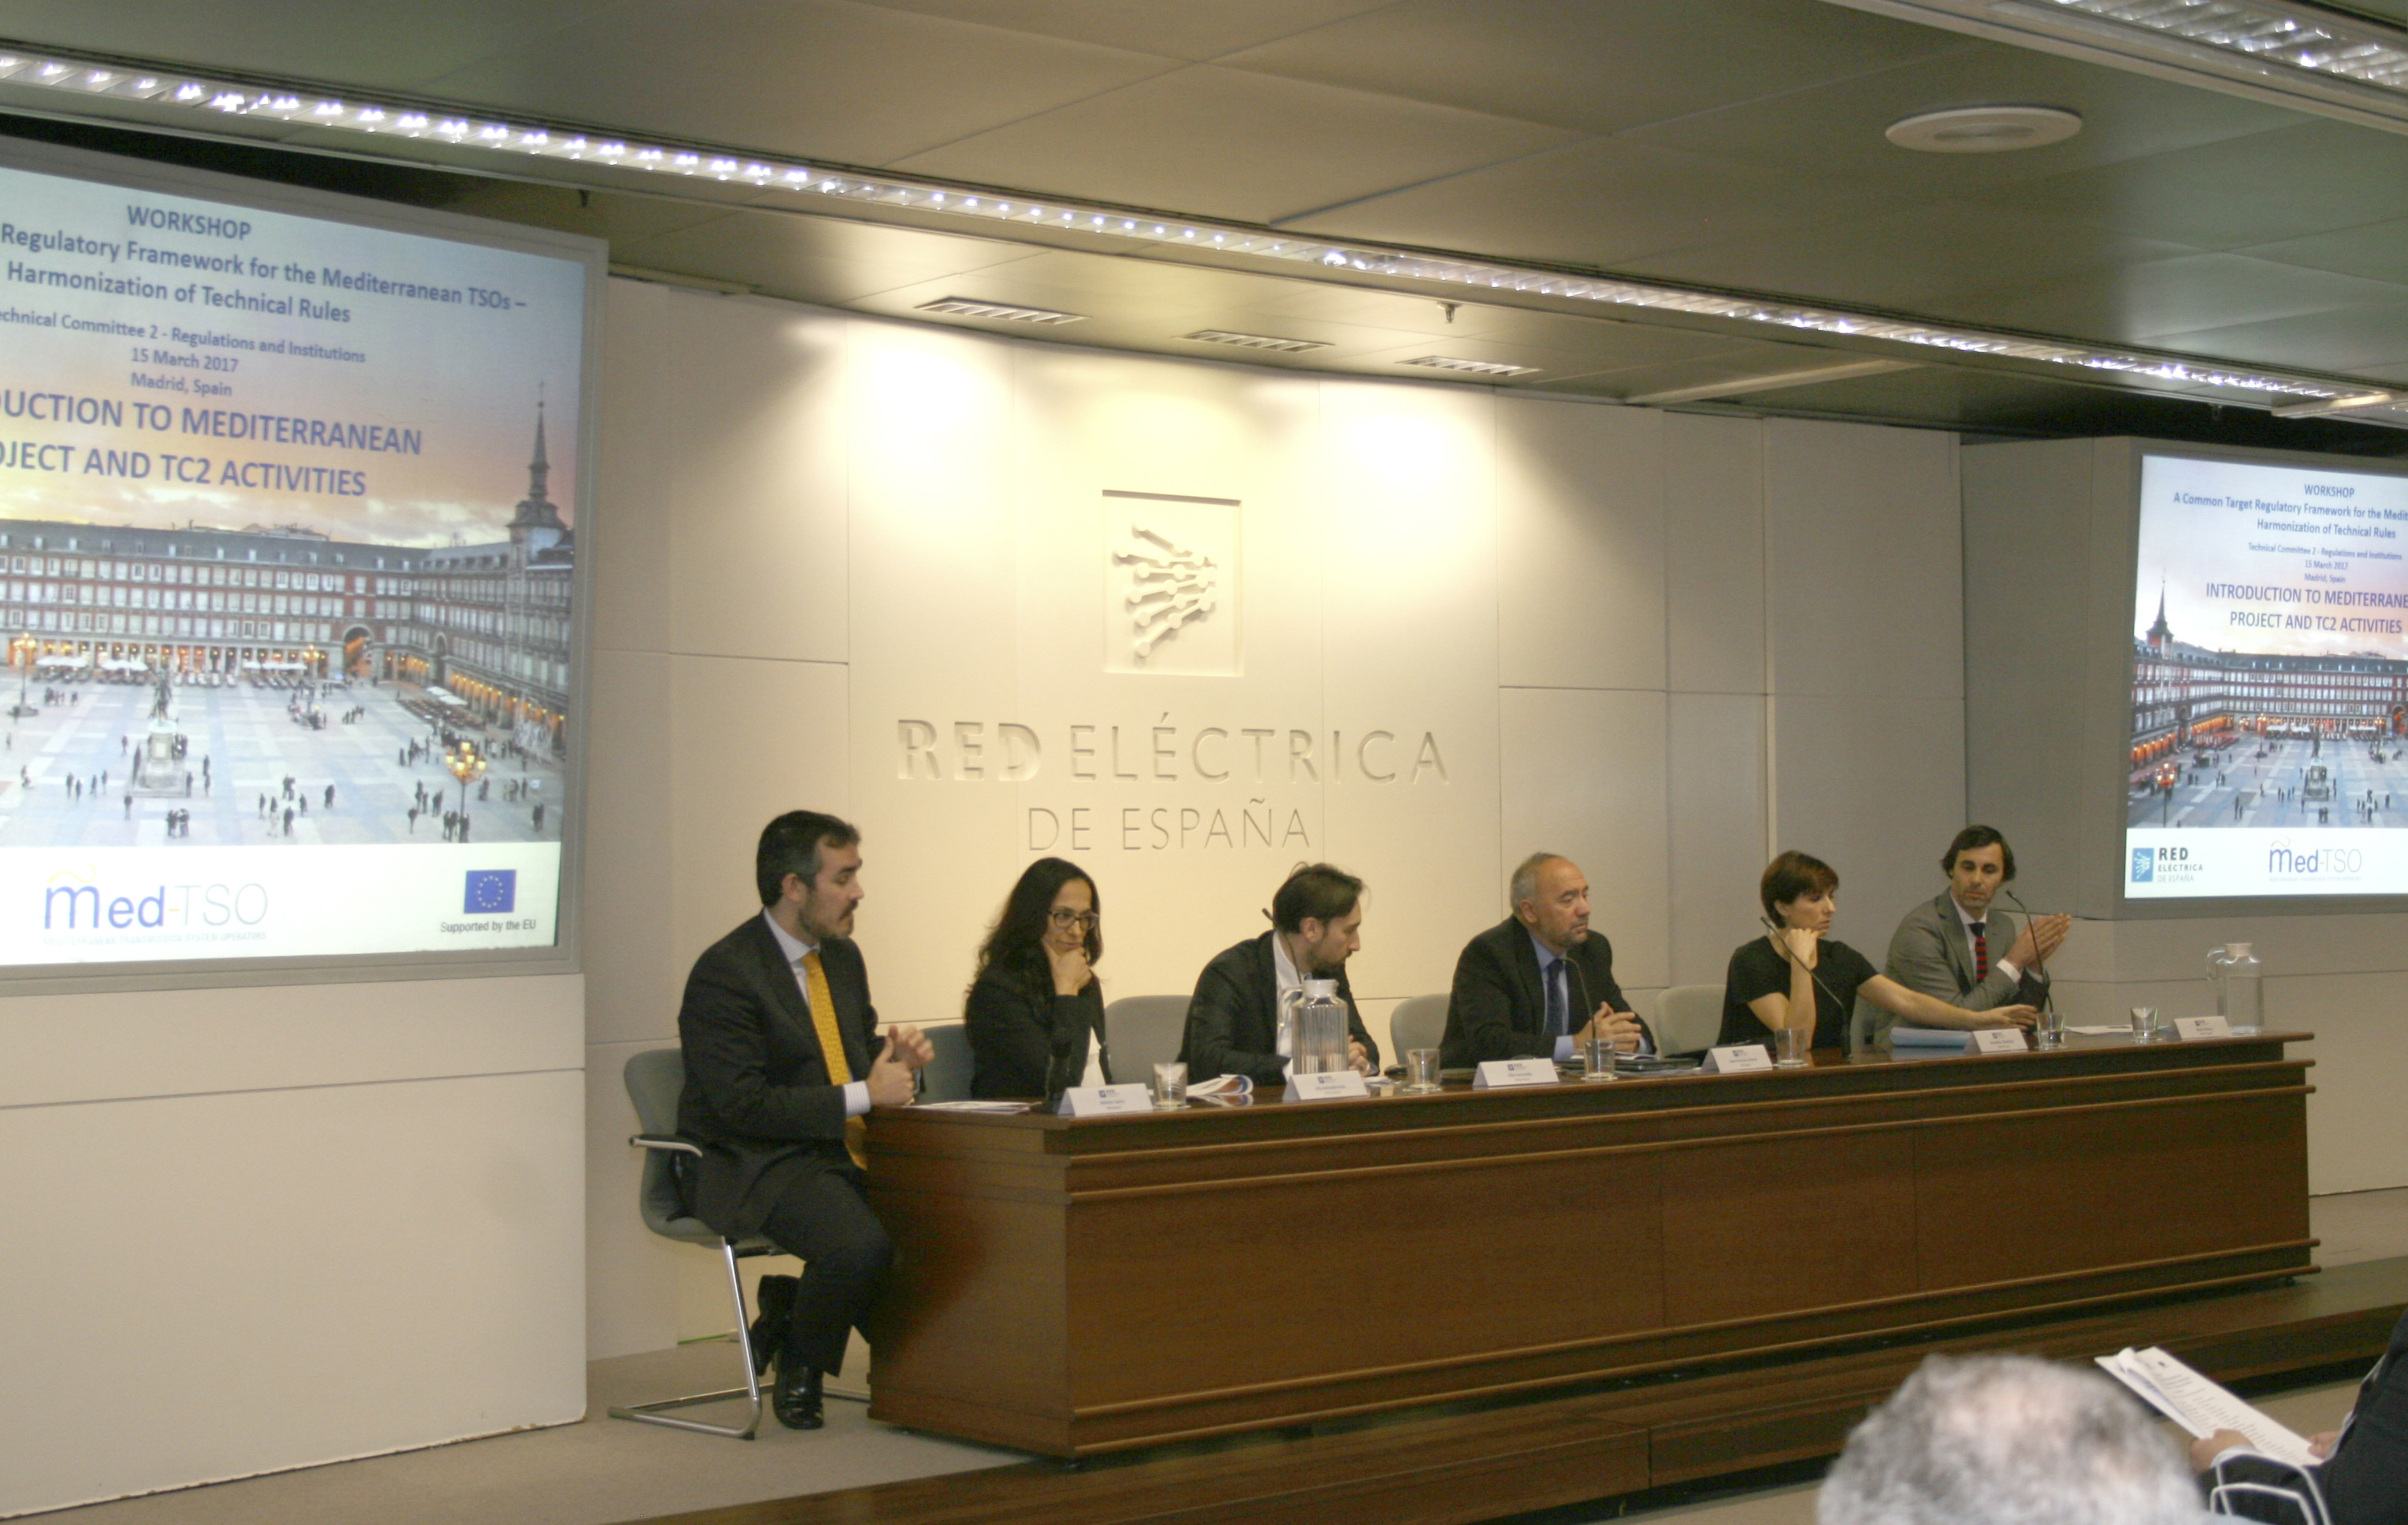 A moment of the first session: (from left to right) Andrés Sainz (REE), Olfa Belhadj Hmida (STEG), Vito Gonnella (TERNA), Juan Francisco Alonso (REE), Stamatina Efstathiou (ADMIE), Bruno Nunes (REN)